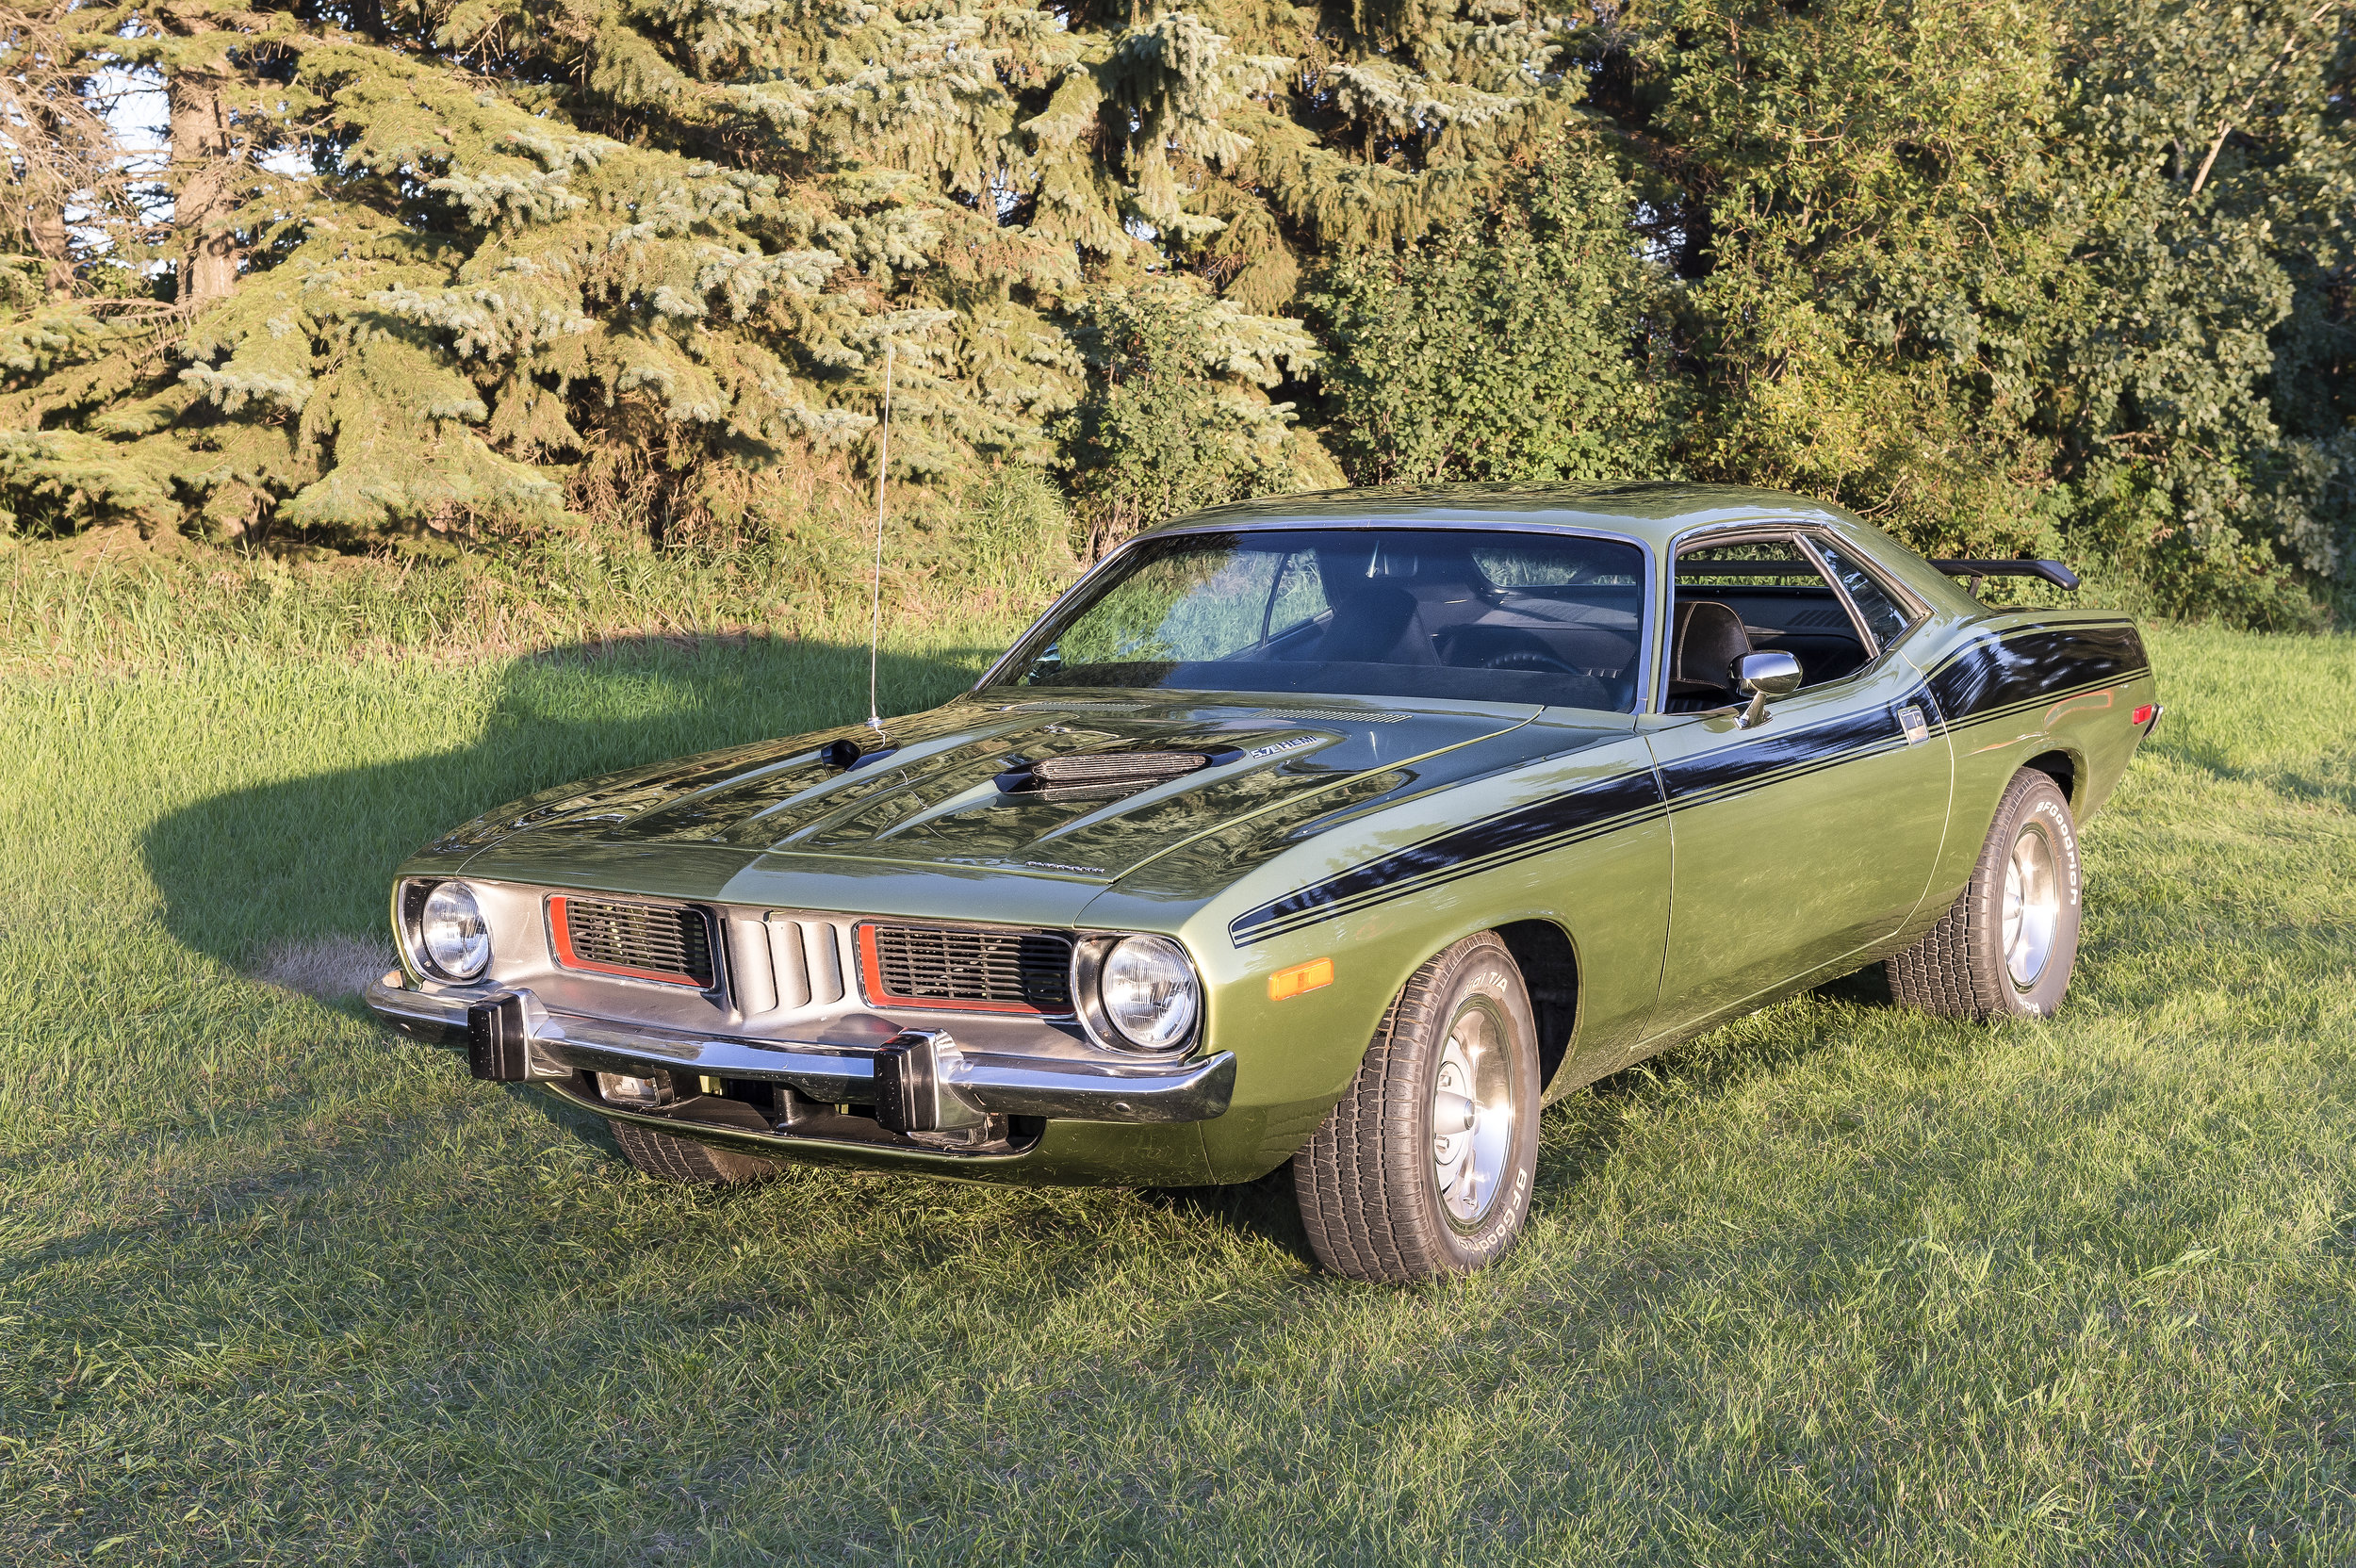 "1973 Plymouth Barracuda   5.7 Hemi Engine and a 727 Automatic transmission and 8-3/4"" Rear Diff. This car is locally owned and driven. You can see it and more at Just Kruzin Kruz nights"